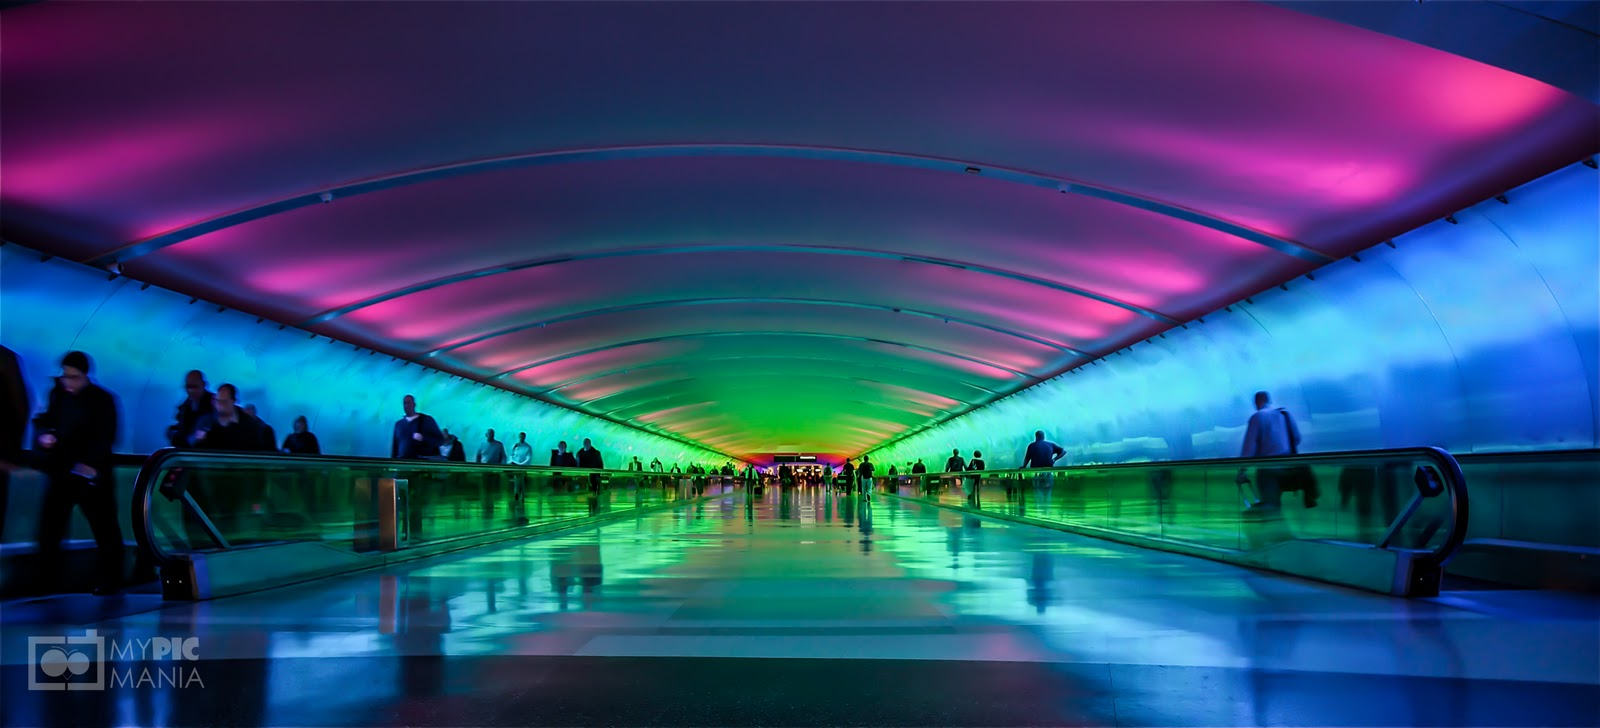 Detroit Airport My Pic Mania